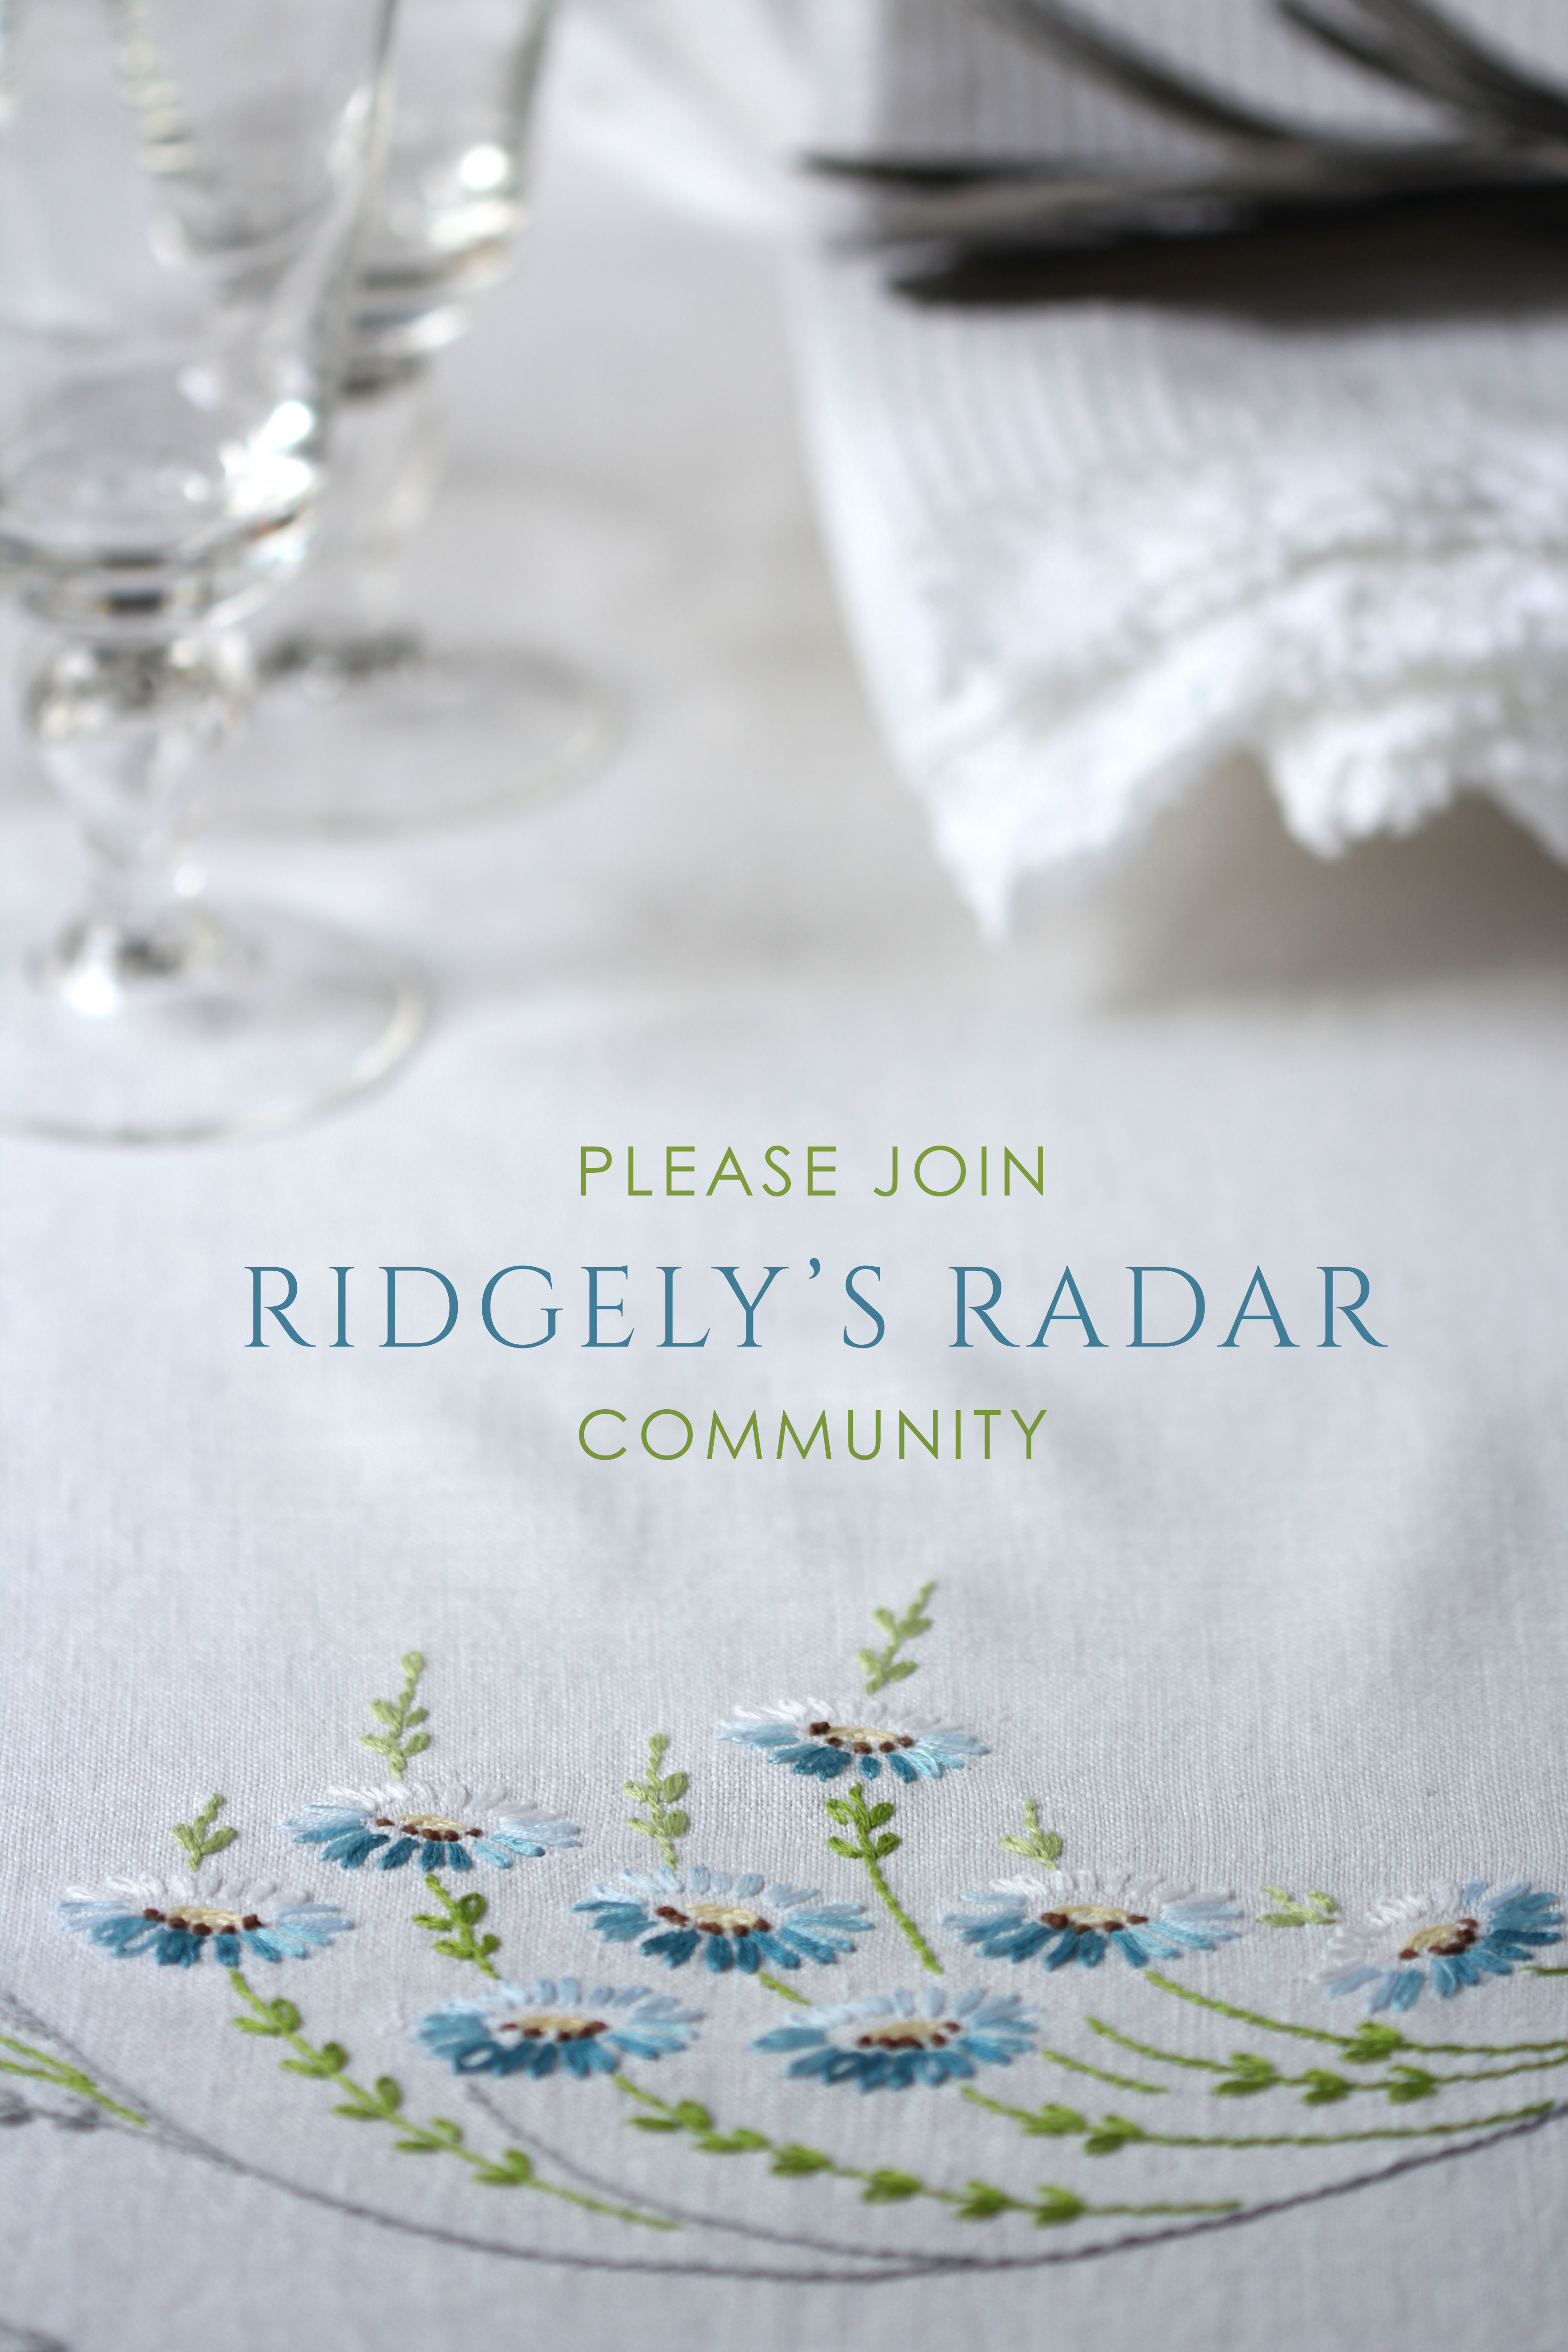 Ridgely Brode has created a Ridgely's Radar Community to share and have conversations with her readers in a private forum and hopes everyone will join her.